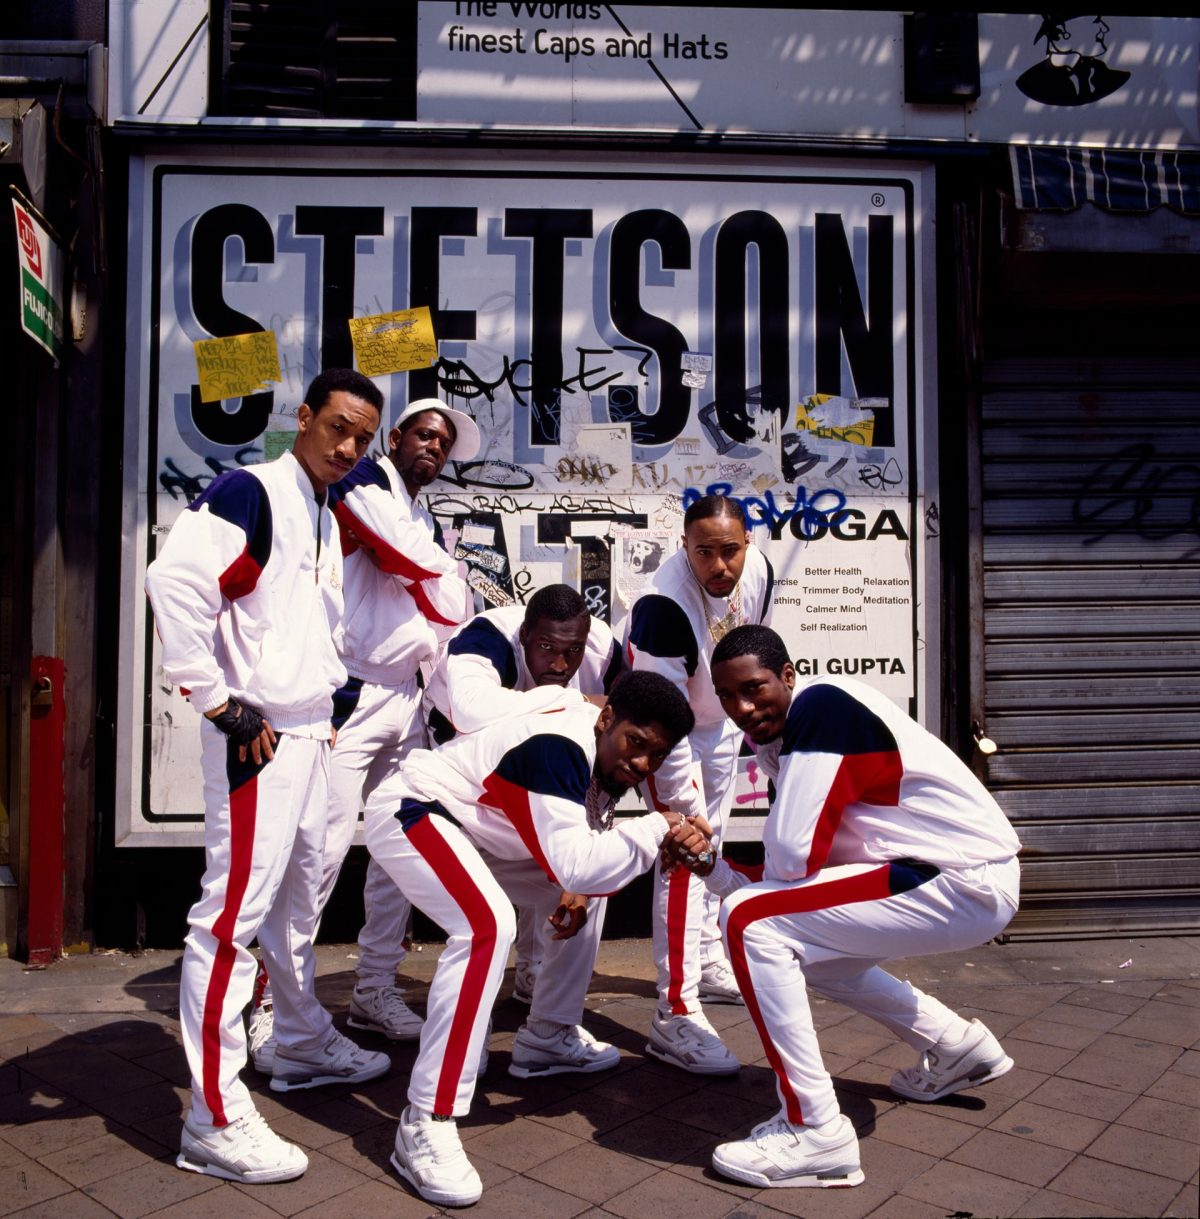 Stetsasonic in Brooklyn, 1988 'I spent the day with Stetsasonic photographing them for the album cover for In Full Gear,' says Beckman. 'I knew about the Stetson poster in Brooklyn. It was covered in graffiti, including a tag by the legendary Chino, who 25 years later would reinterpret this photo as part of my Mashup series, drawing over his own work' Photograph: Janette Beckman/Getty Images